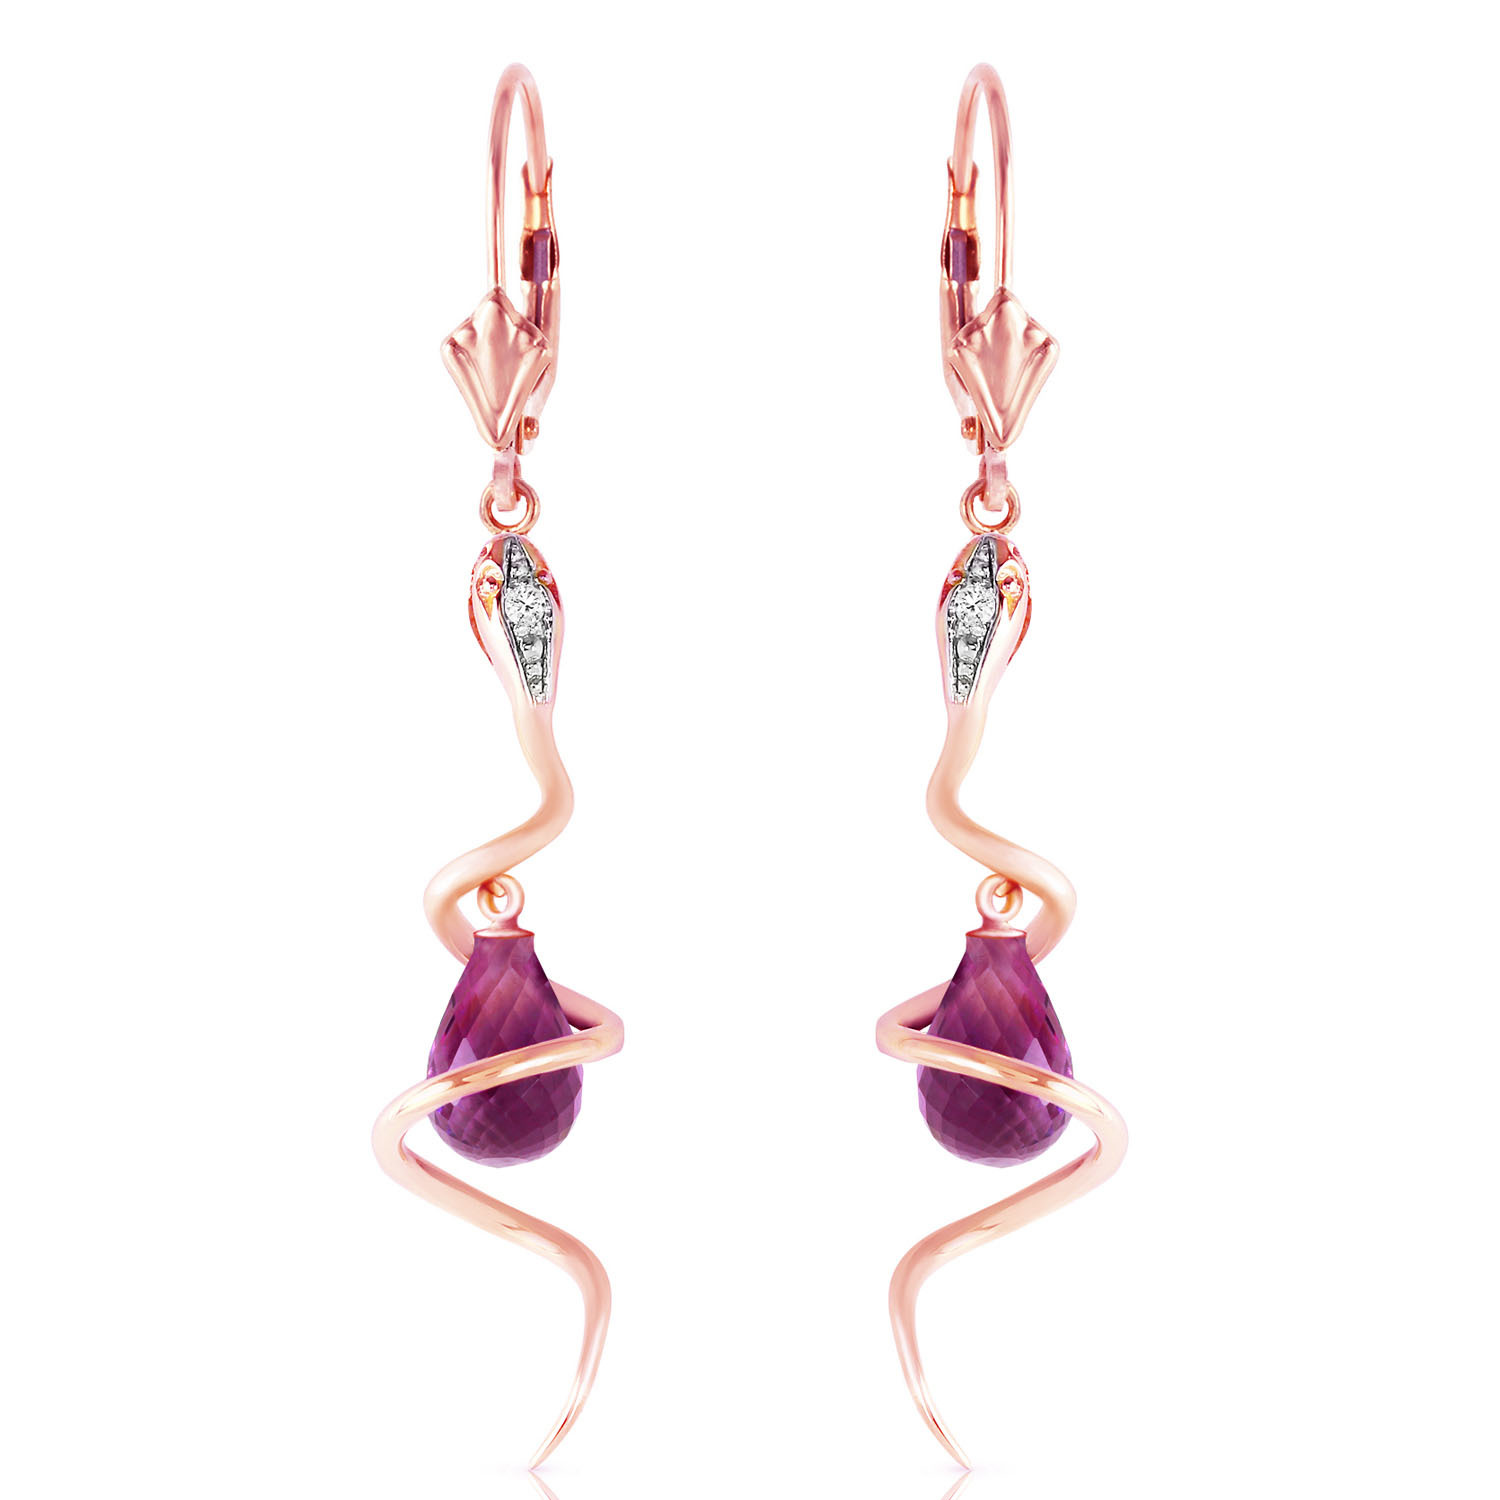 Primary image for 14K Solid Rose Gold Snake Earrings with Dangling Briolette Amethysts & Diamonds